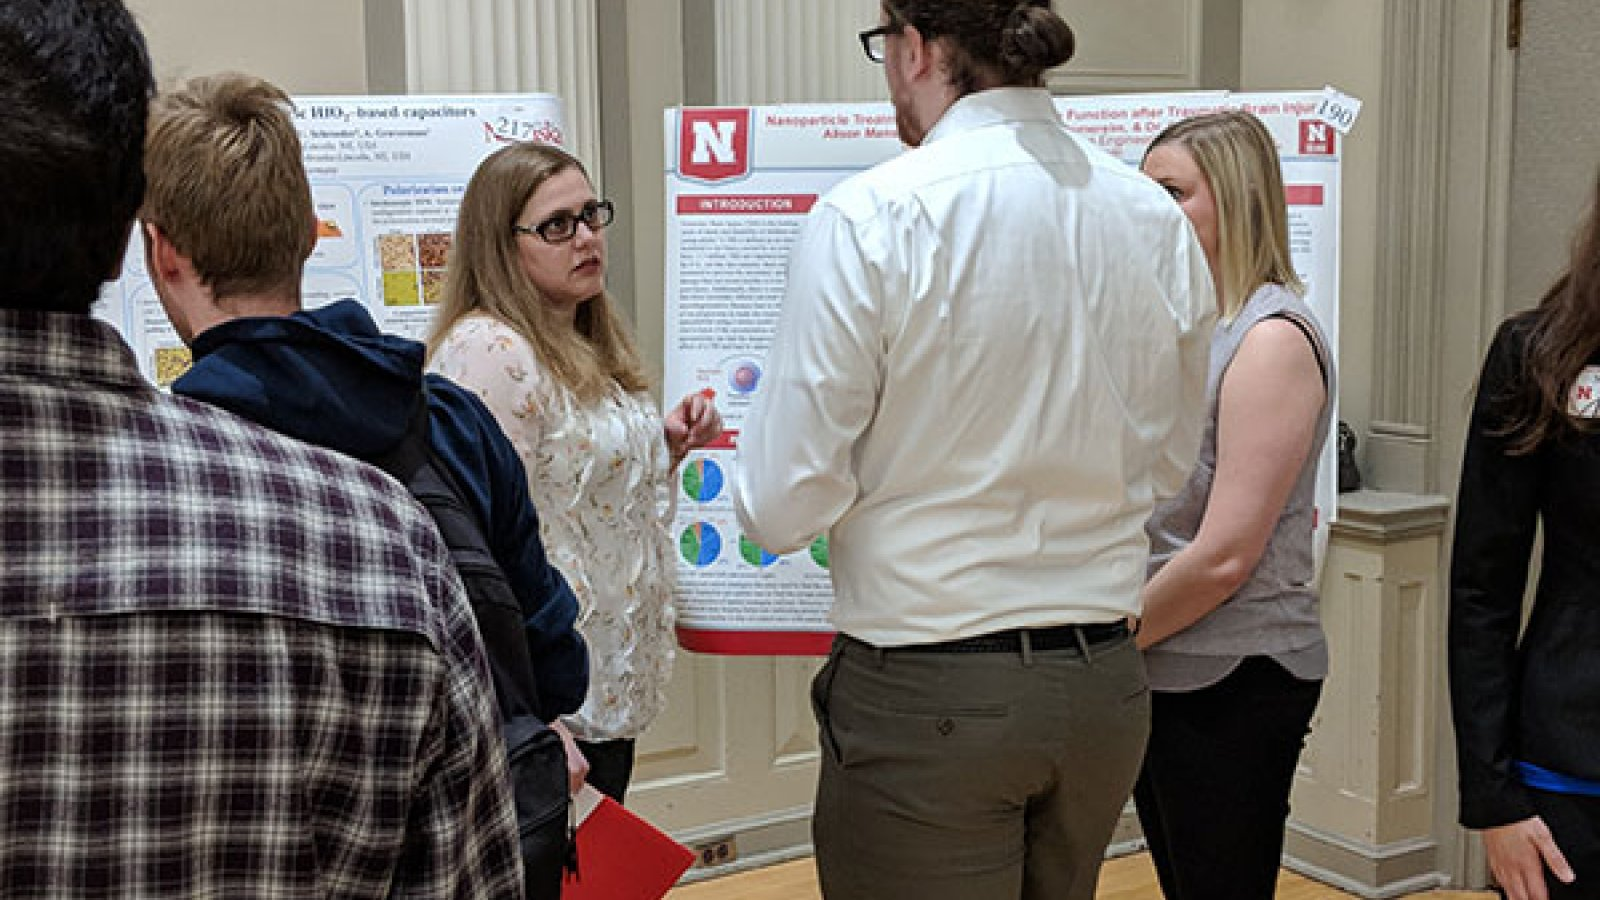 Connor Gee (center) and Allison Manske (right), biological systems engineering students, discuss their project with Nicole Iverson, assistant professor of biological systems engineering.